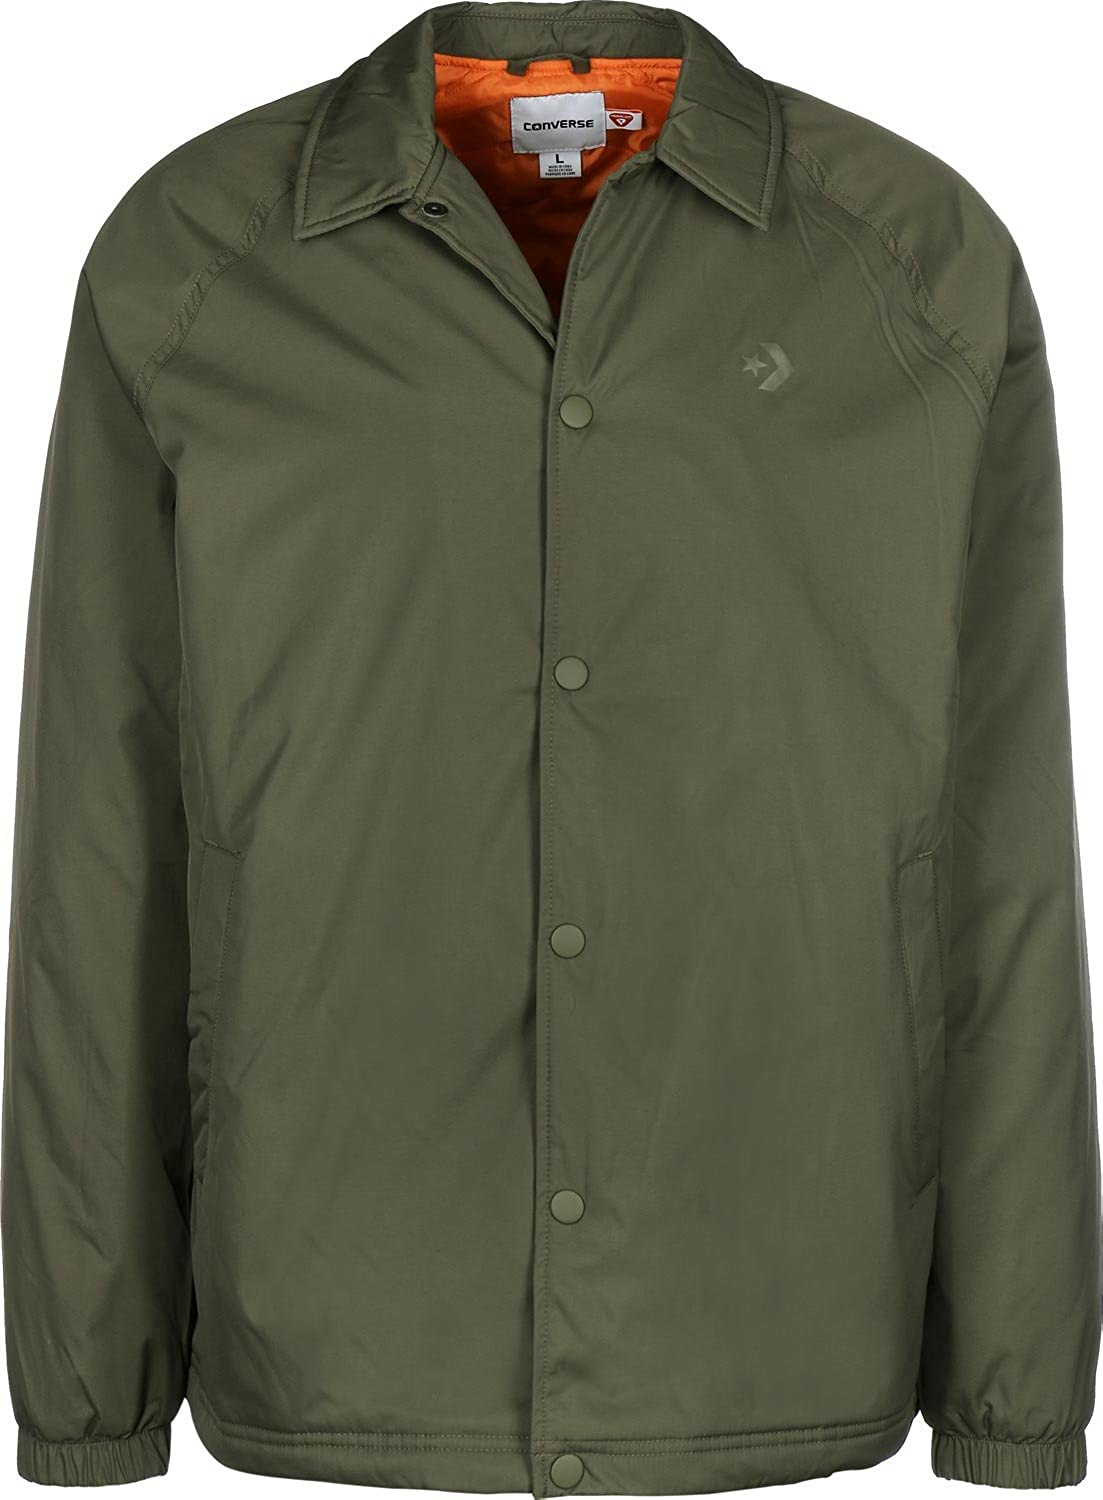 fe9b82ae8a6a Converse Men s Jacket Green Green - Green - X-Small  Amazon.co.uk  Clothing